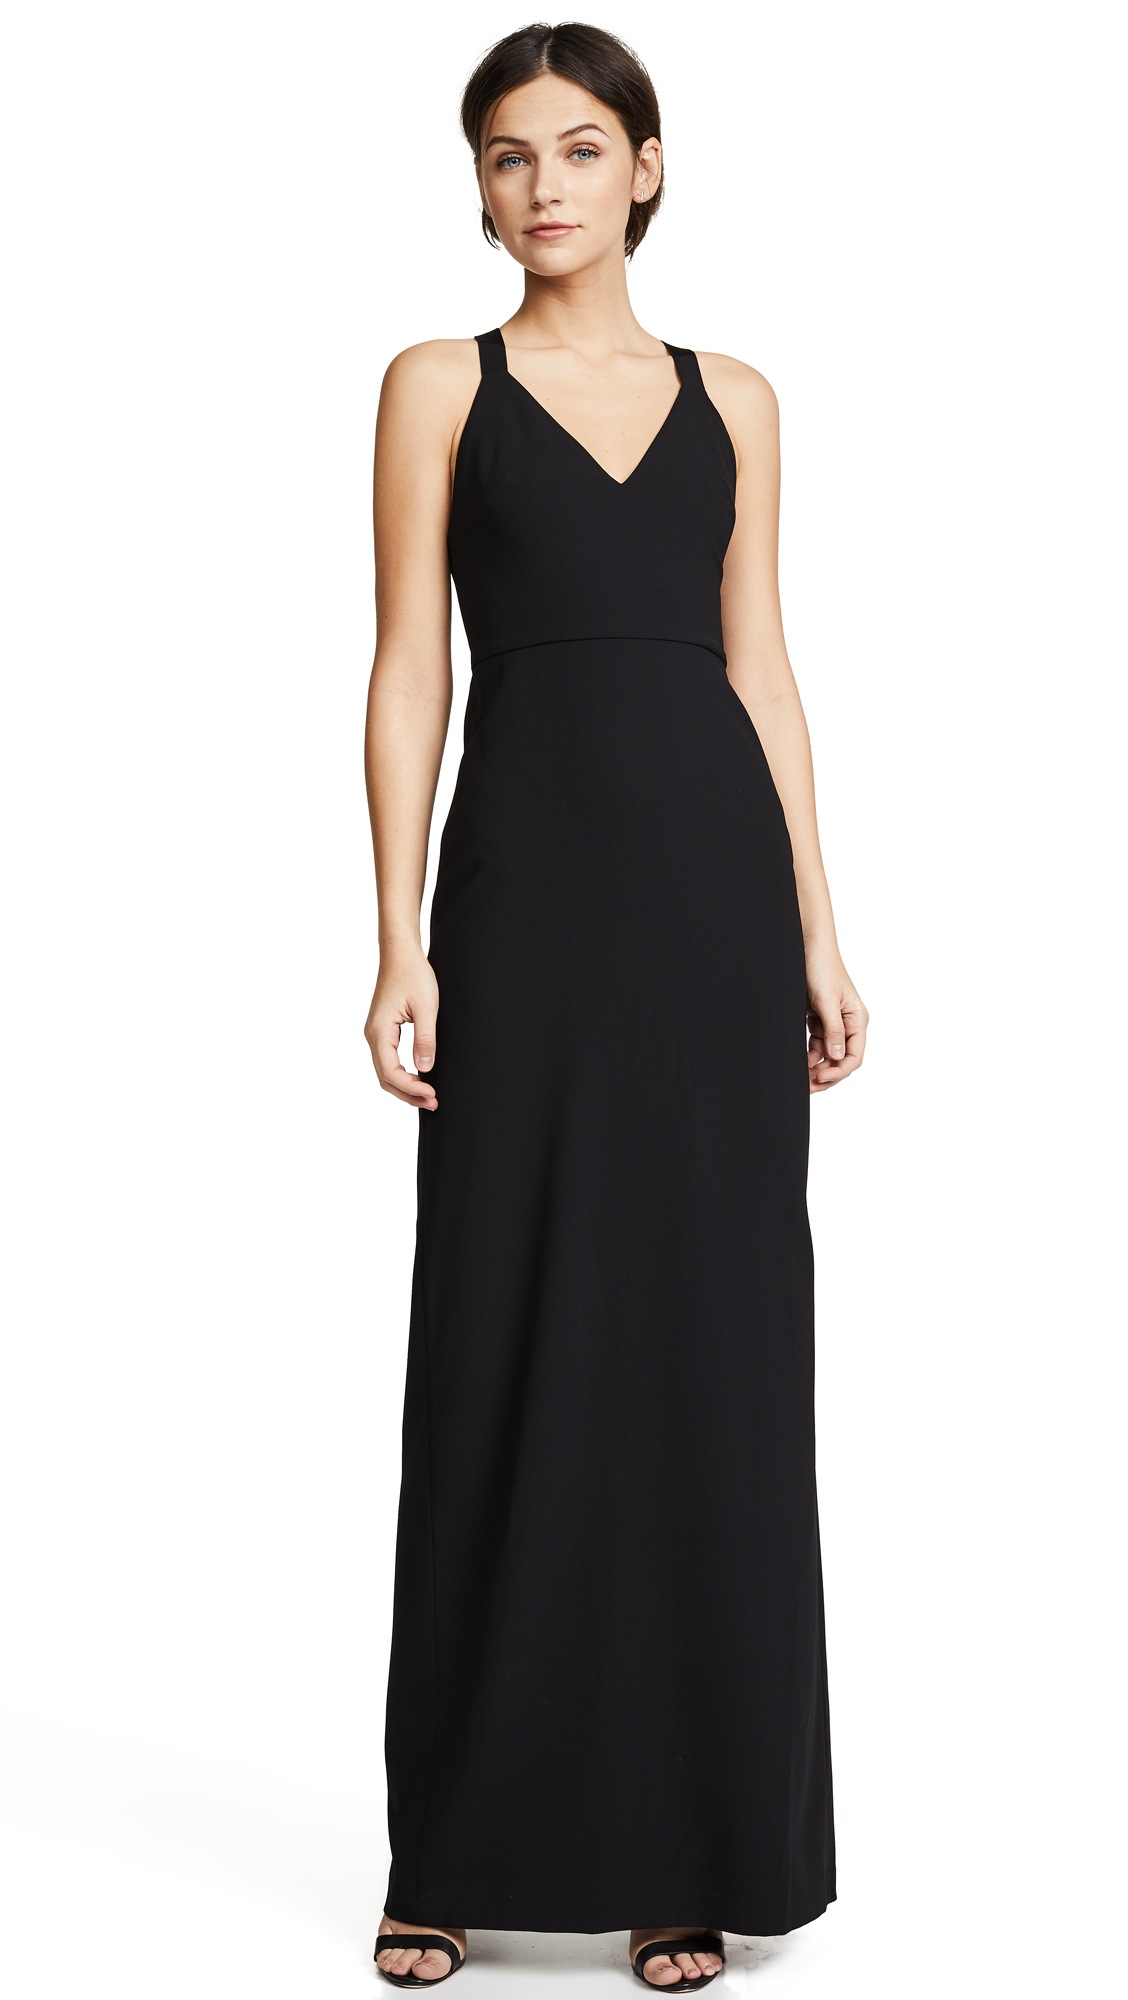 alice + olivia Brianna Maxi Dress In Black